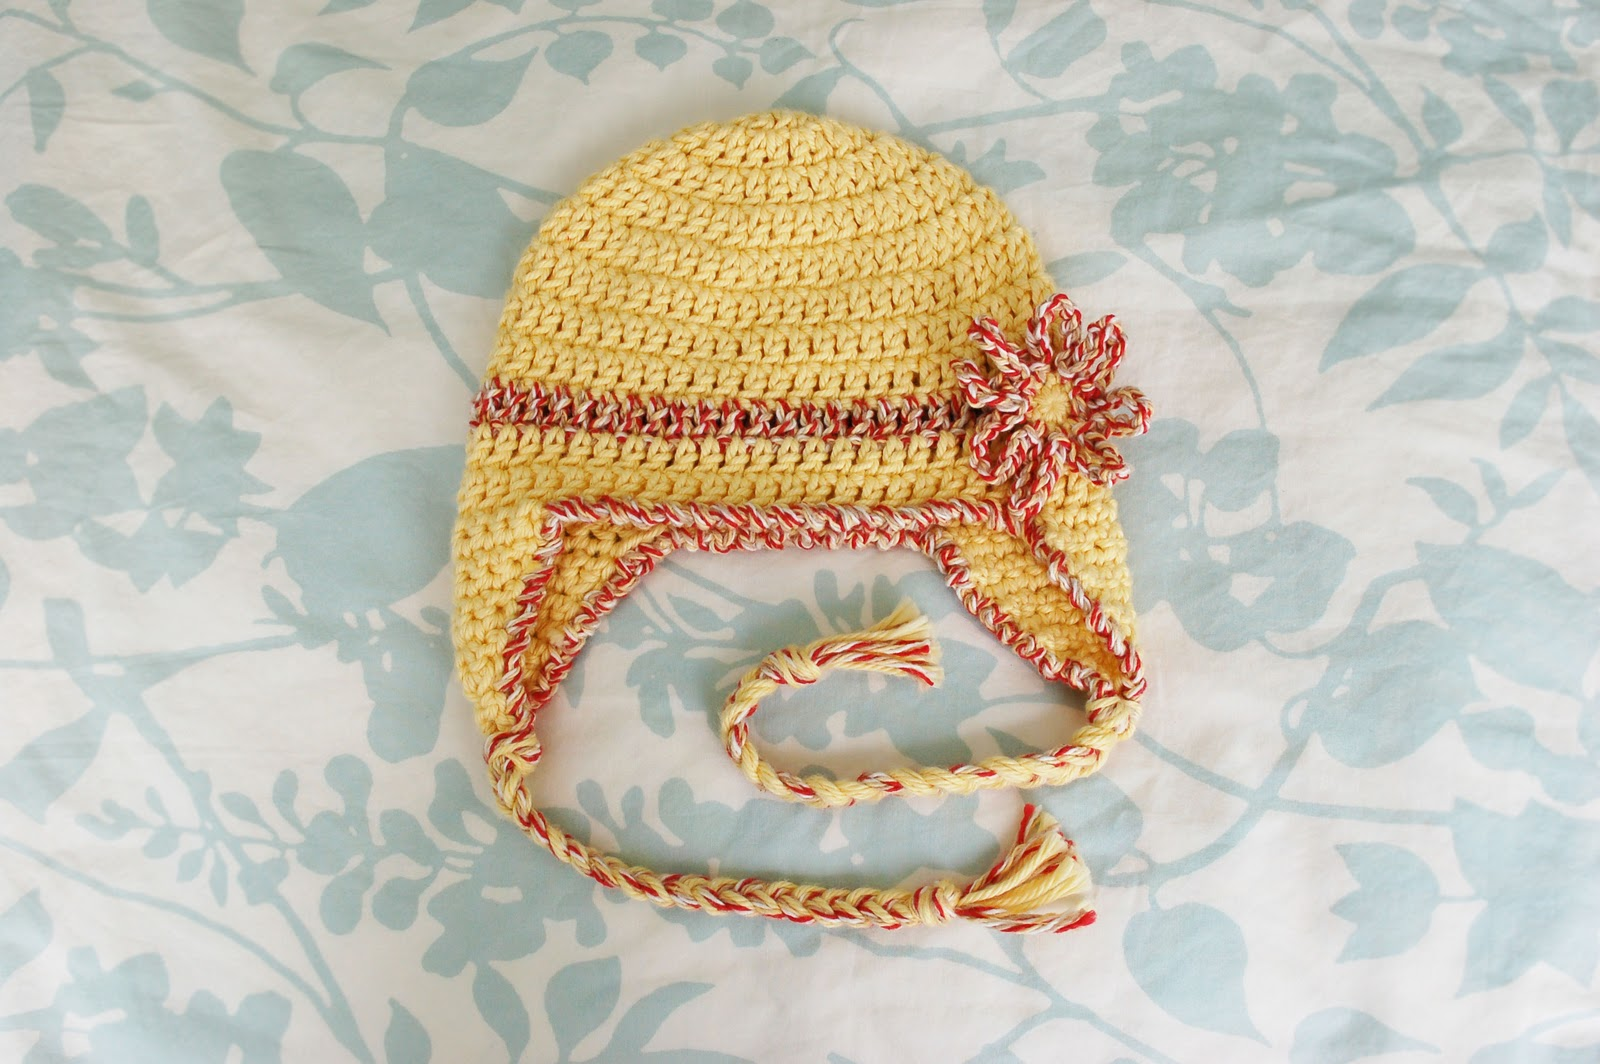 Crochet Baby Hat Patterns 6 Months : Alli Crafts: Free Pattern: Baby Earflap Hat - 6 months